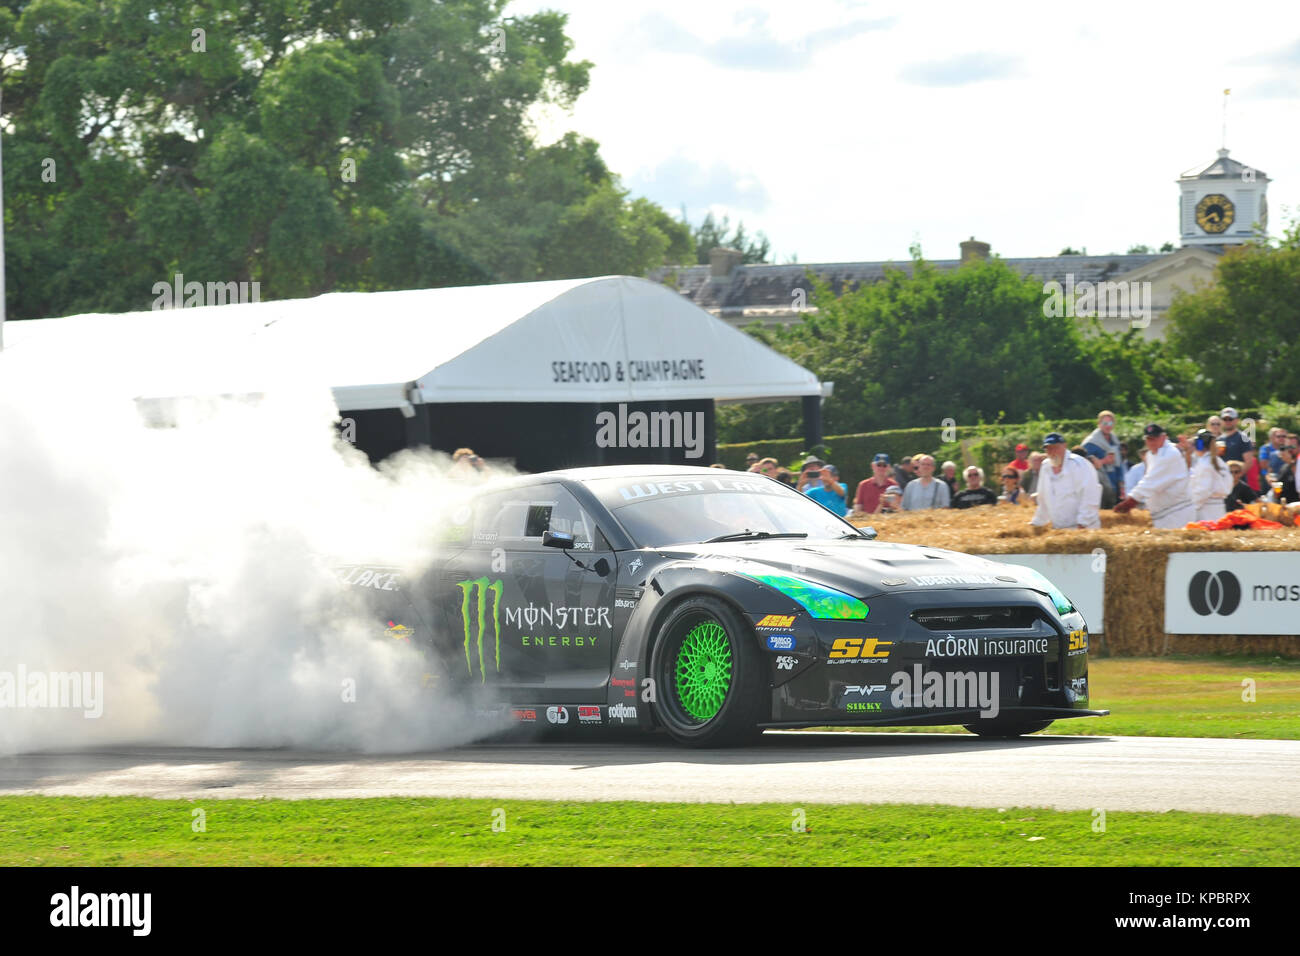 A car performing a burn out at the 2017 Goodwood Festival of Speed. - Stock Image